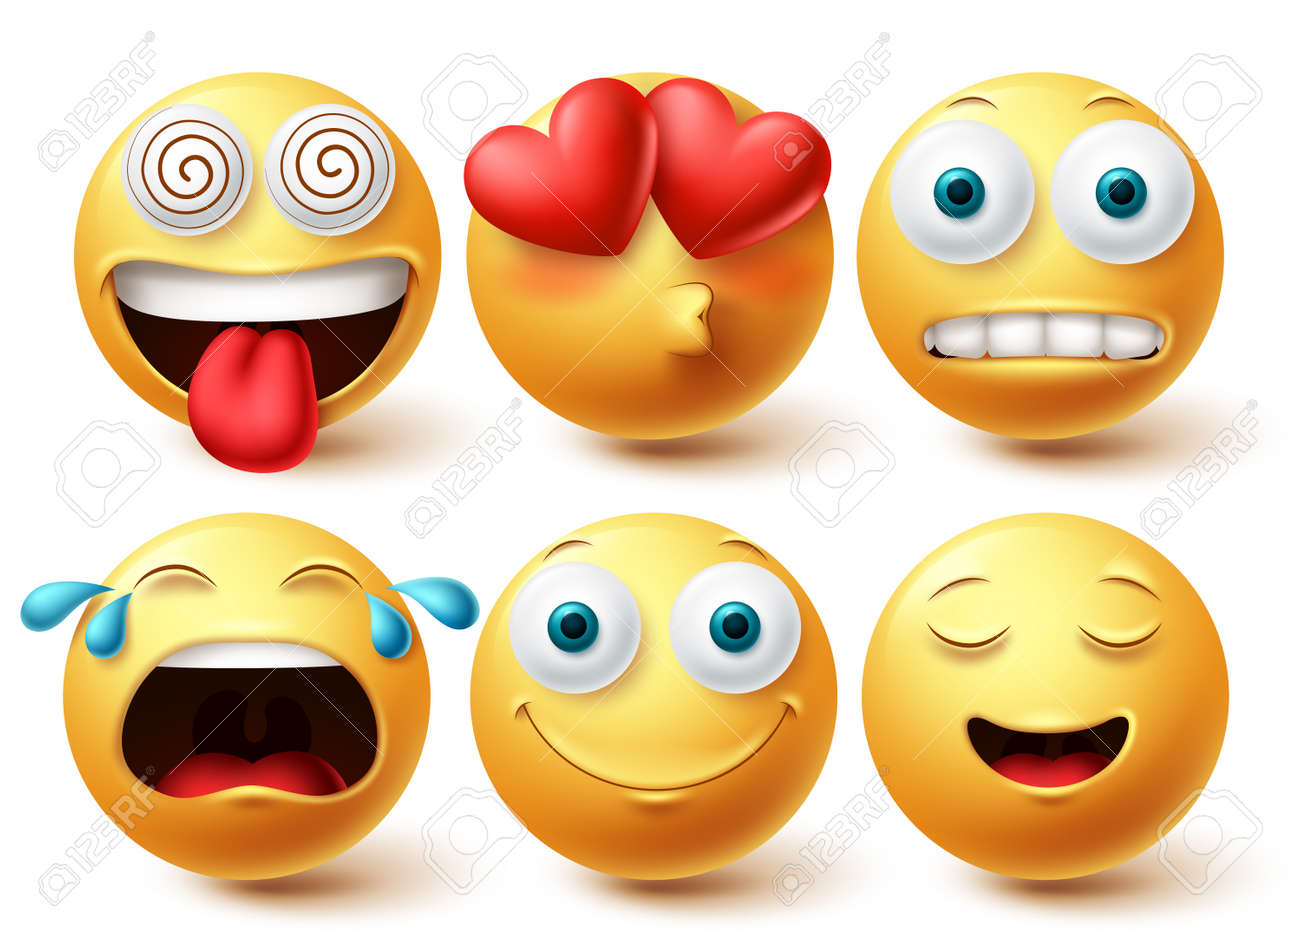 Smiley emoji vector set. Smileys emoticon happy, in love and crying faces icon collection isolated in white background. Vector illustration - 171747804